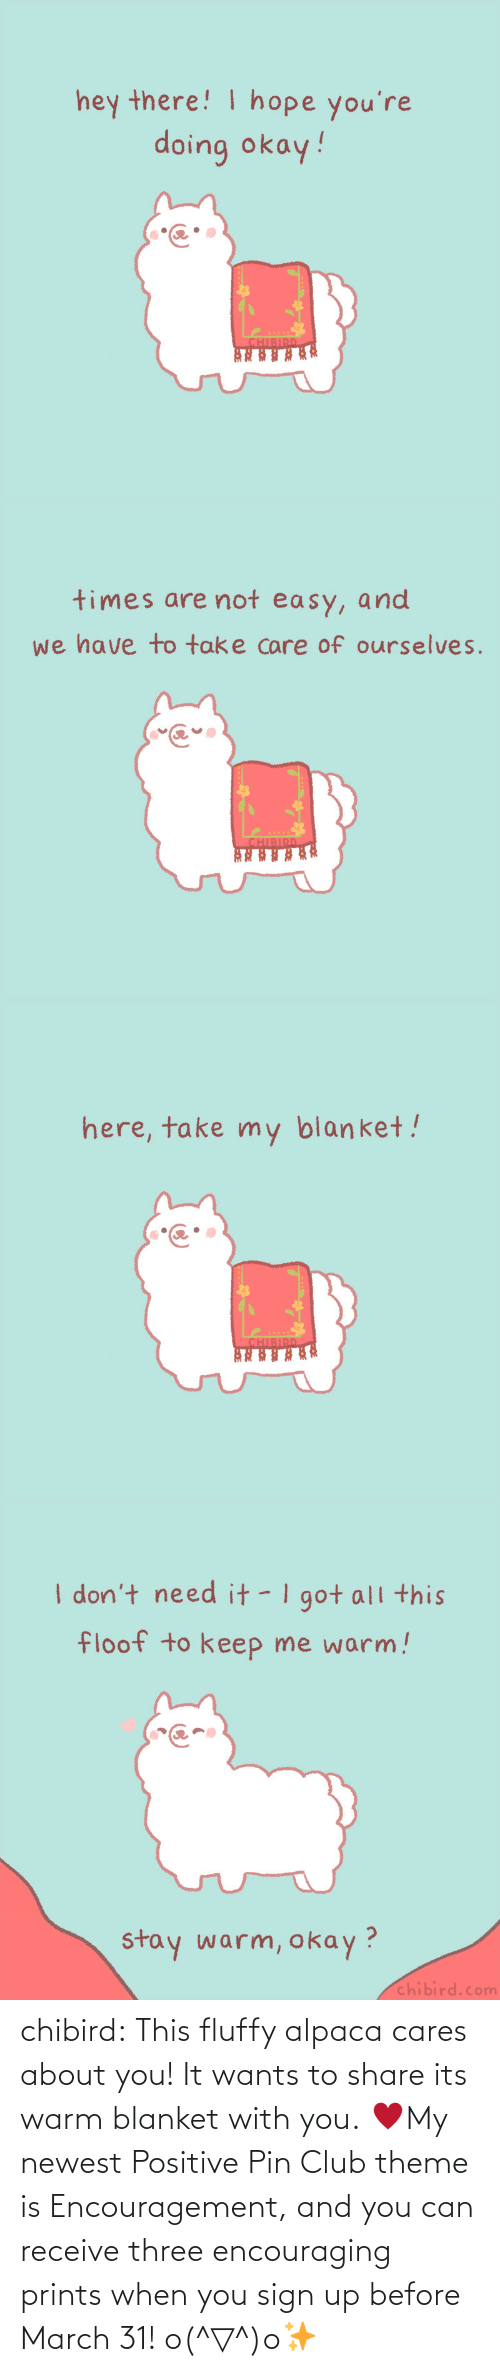 warm: chibird:  This fluffy alpaca cares about you! It wants to share its warm blanket with you. ♥My newest Positive Pin Club theme is Encouragement, and you can receive three encouraging prints when you sign up before March 31! o(^▽^)o✨